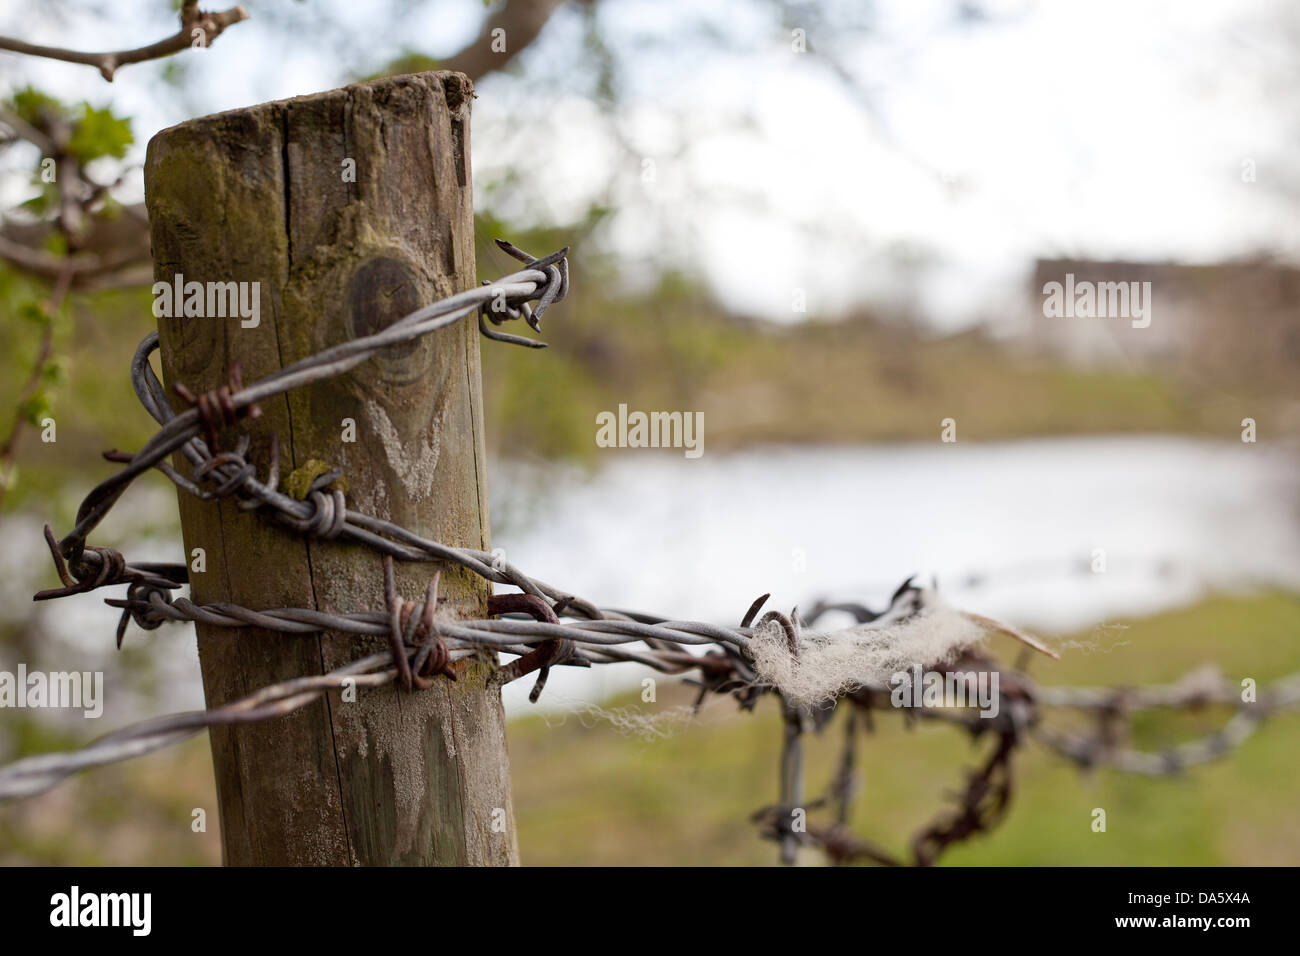 Close-up of a fence post wrapped in barbed wire. - Stock Image